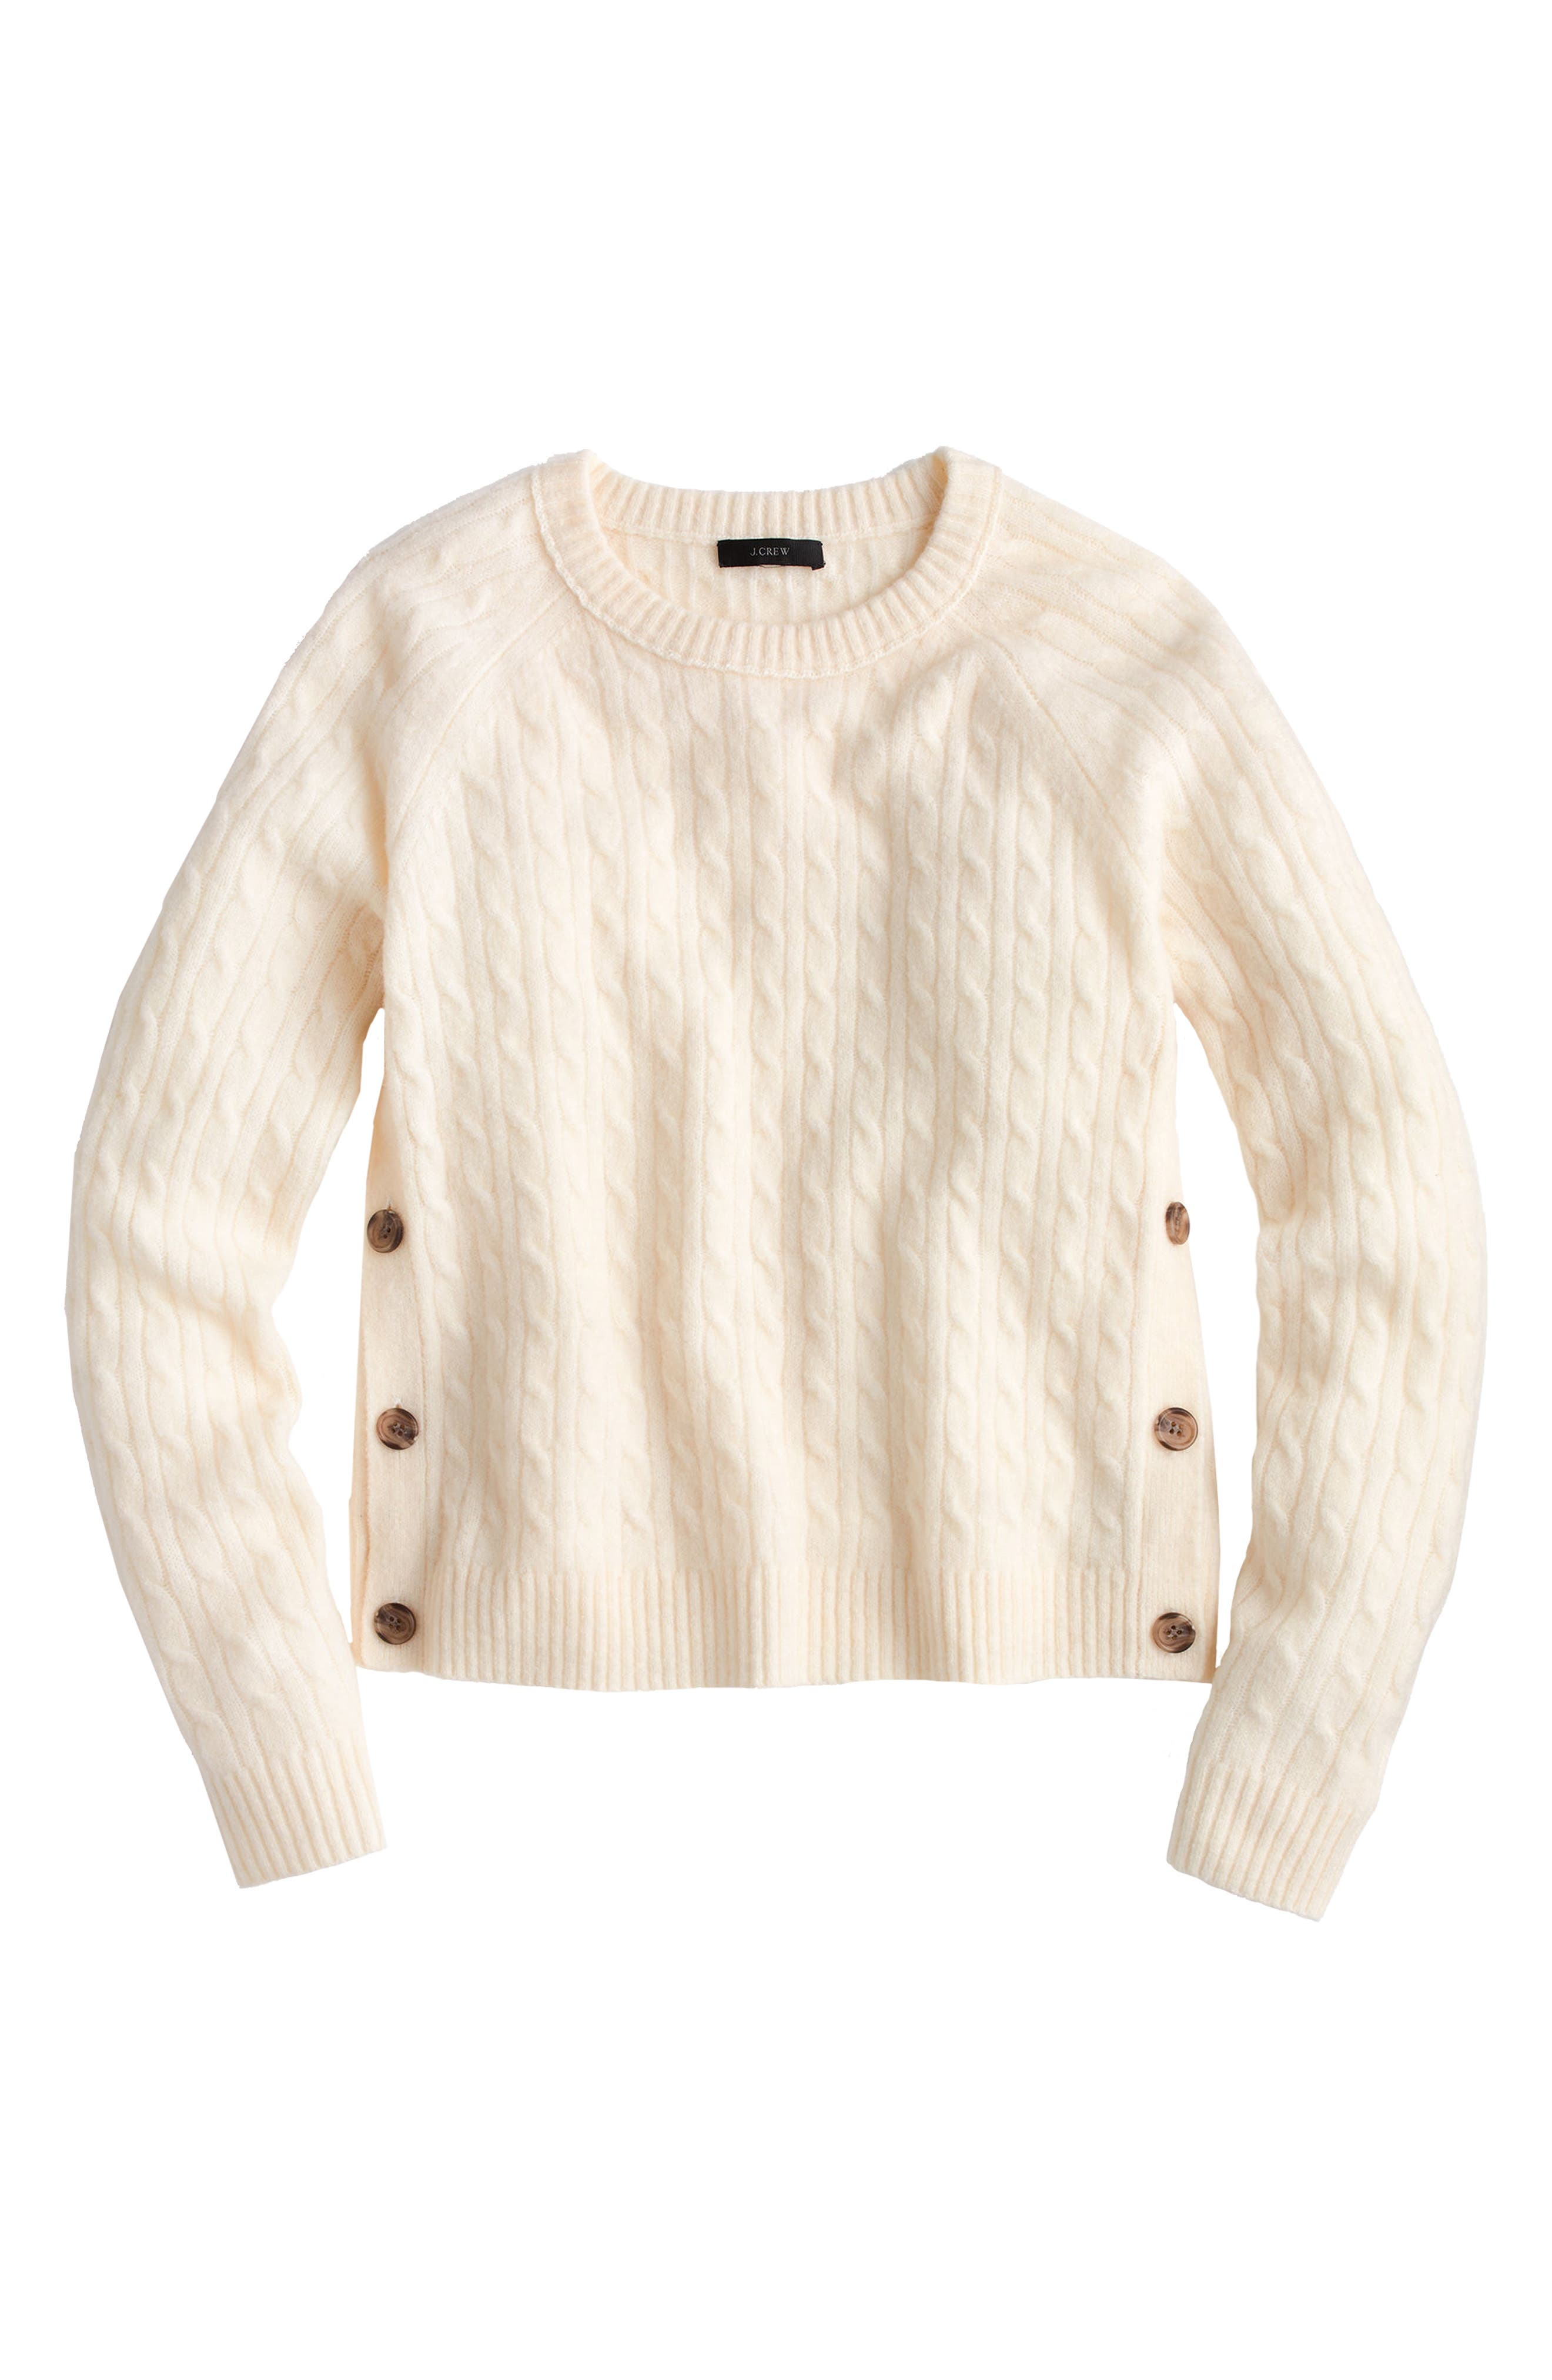 J.Crew Cable Knit Sweater with Buttons